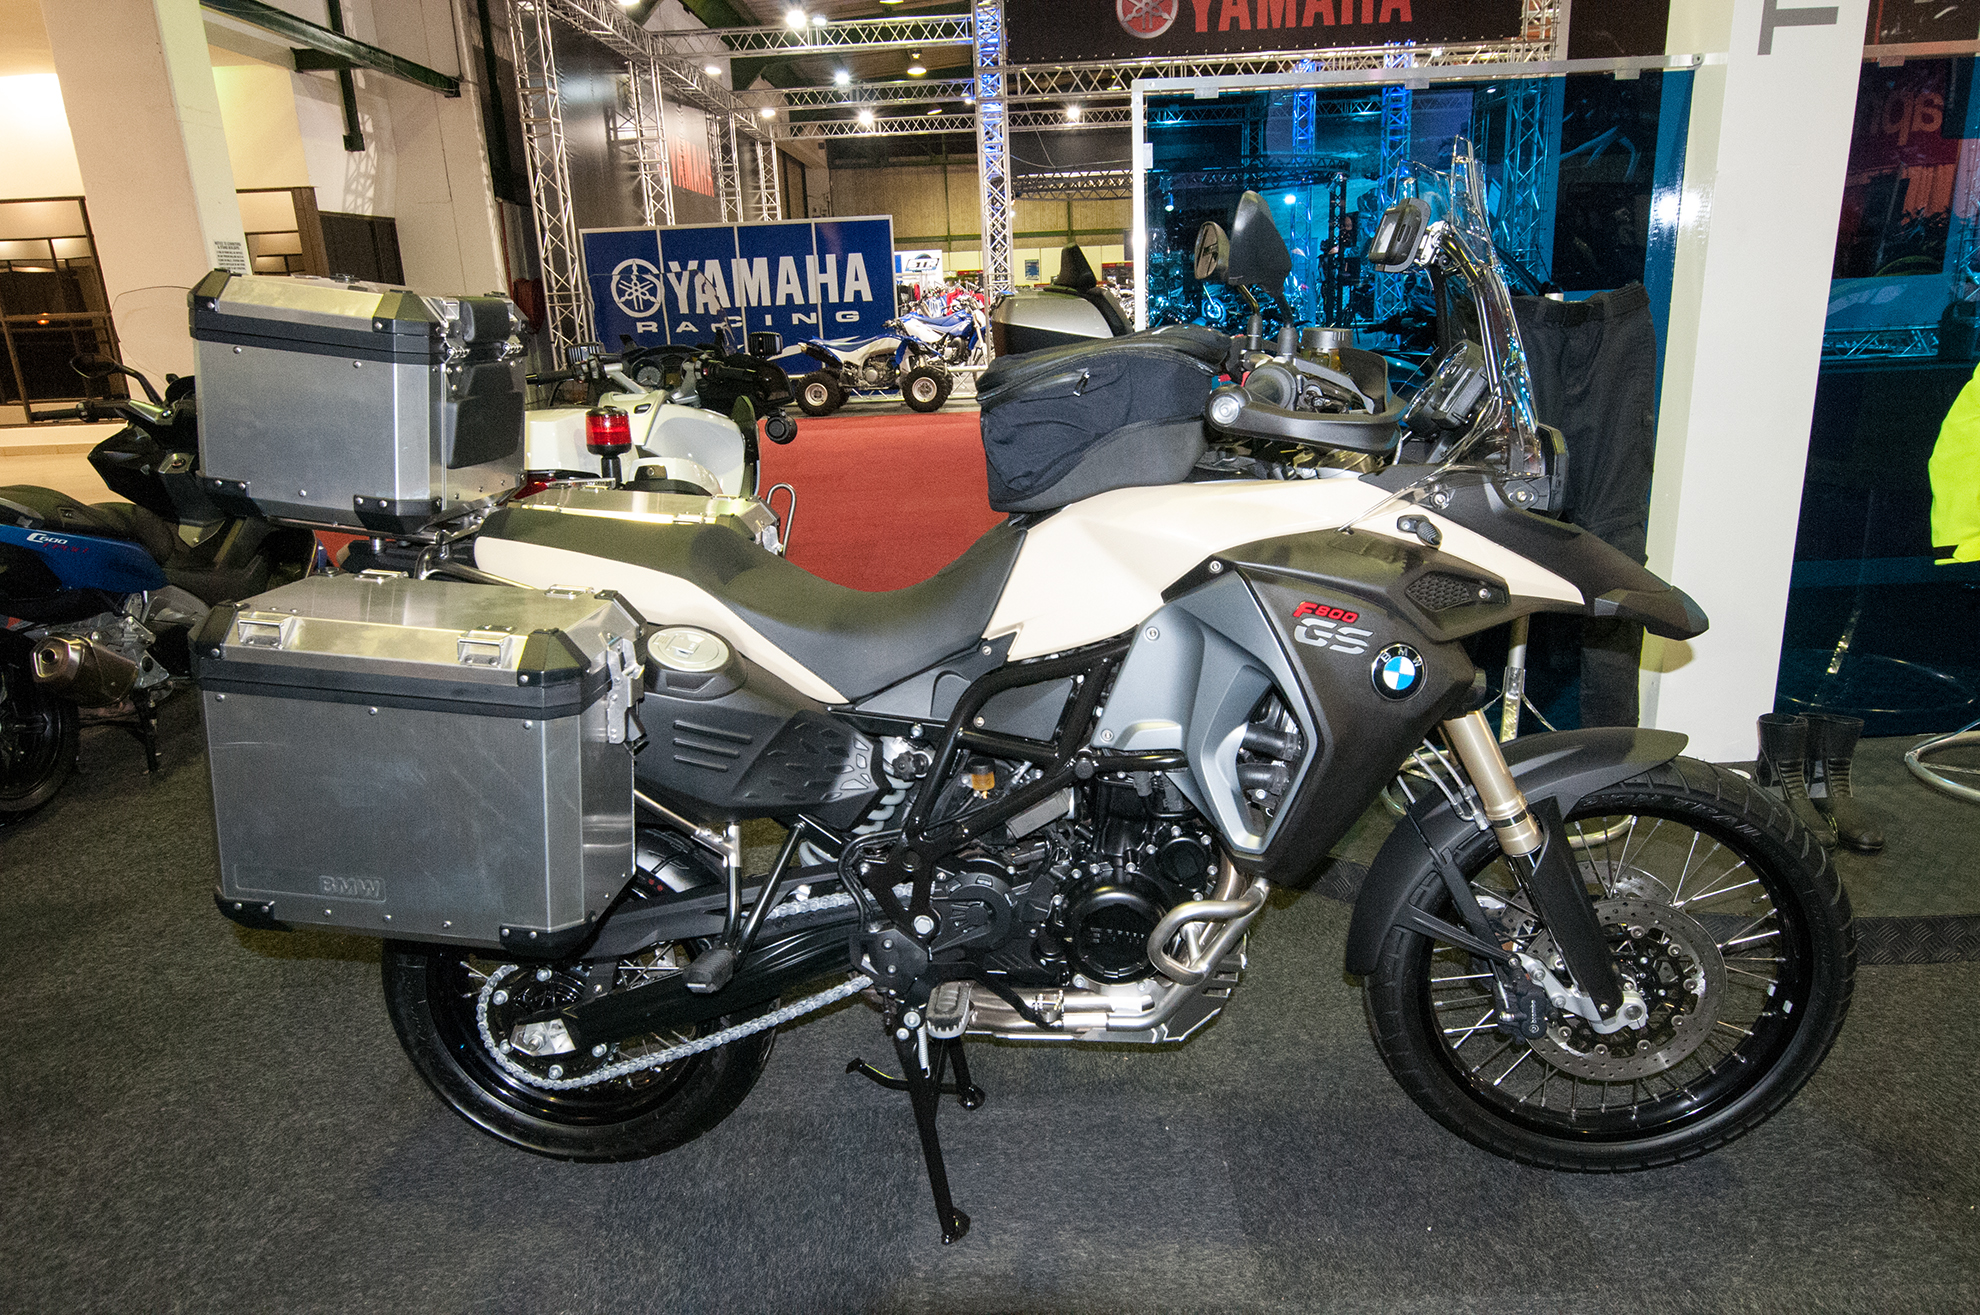 Amid Motorcycle Show